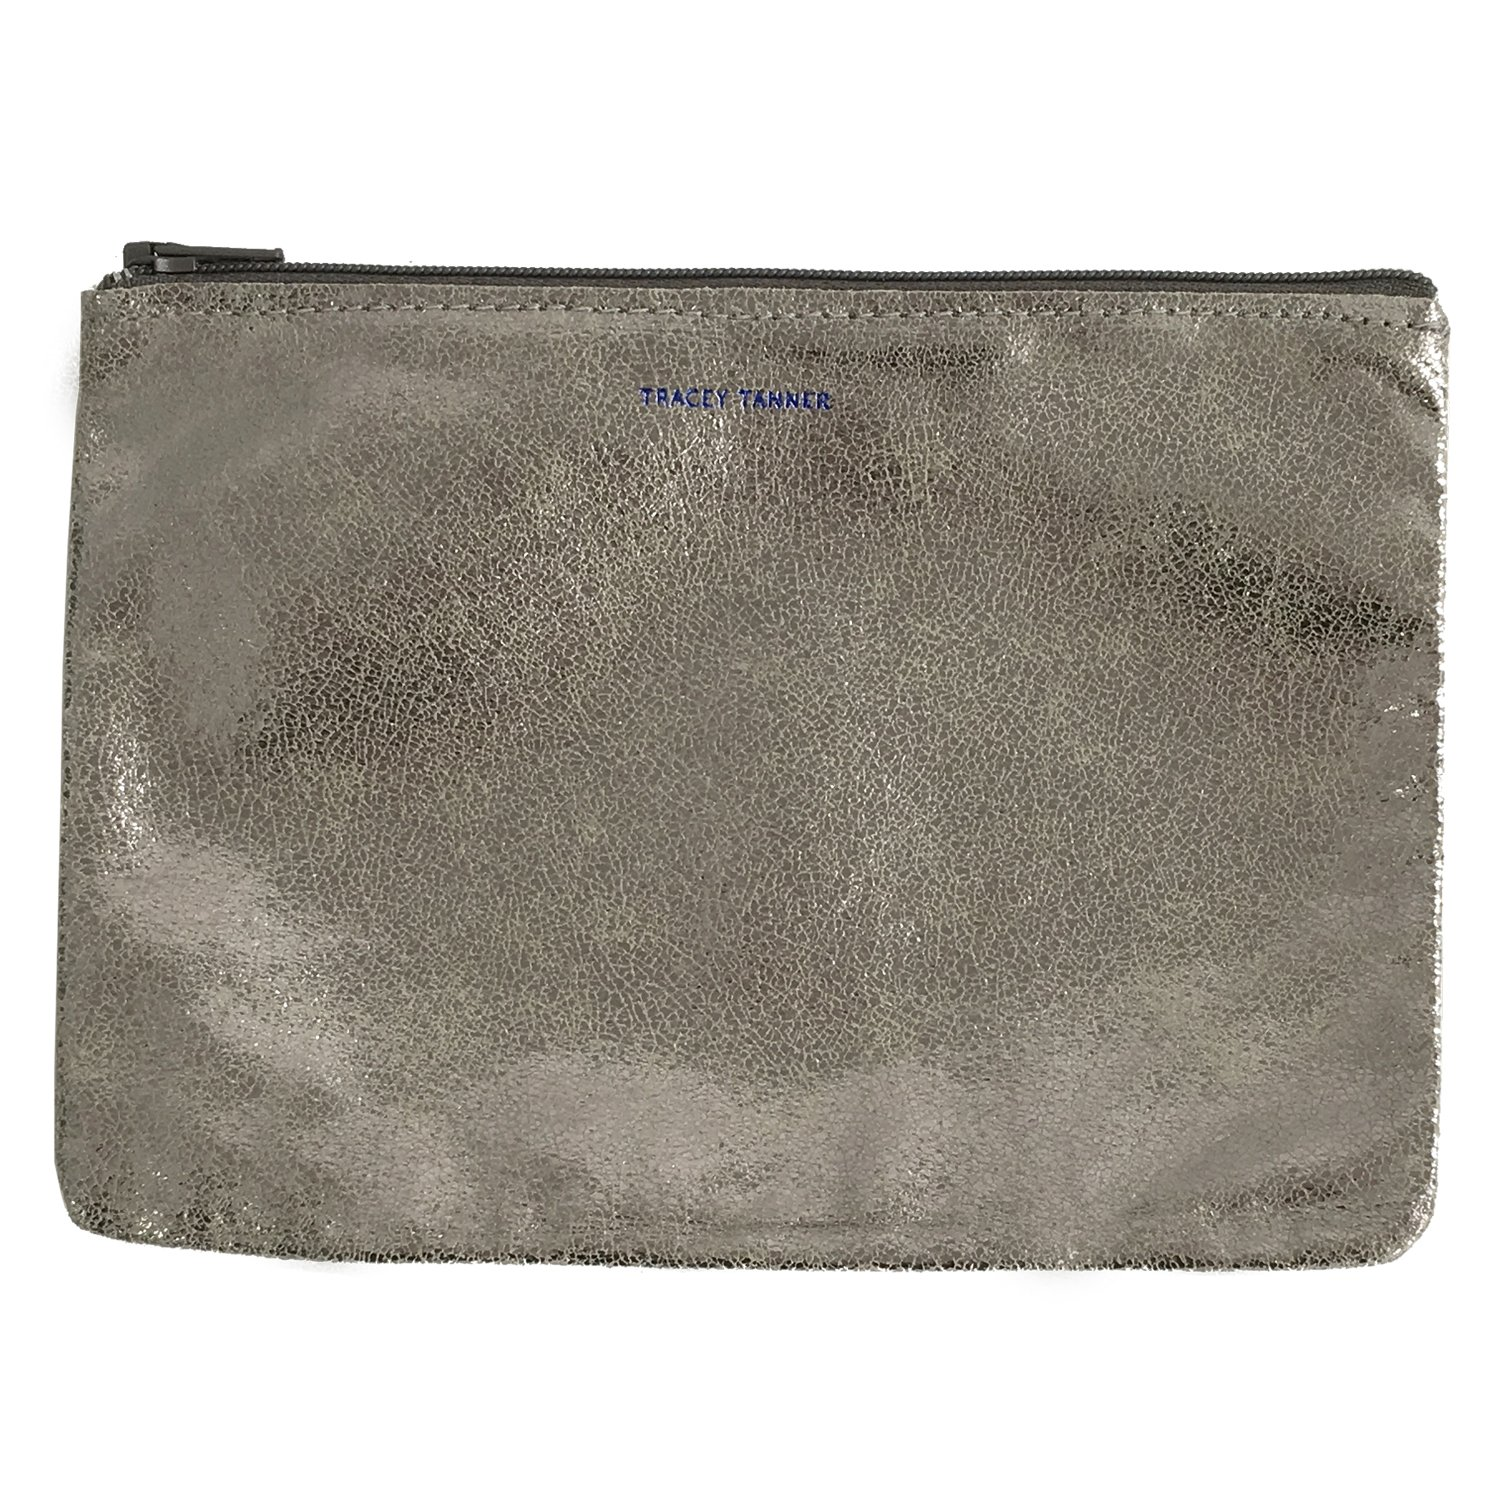 Tracey Tanner Medium Zipper Top Pouch - Silver Sparkle